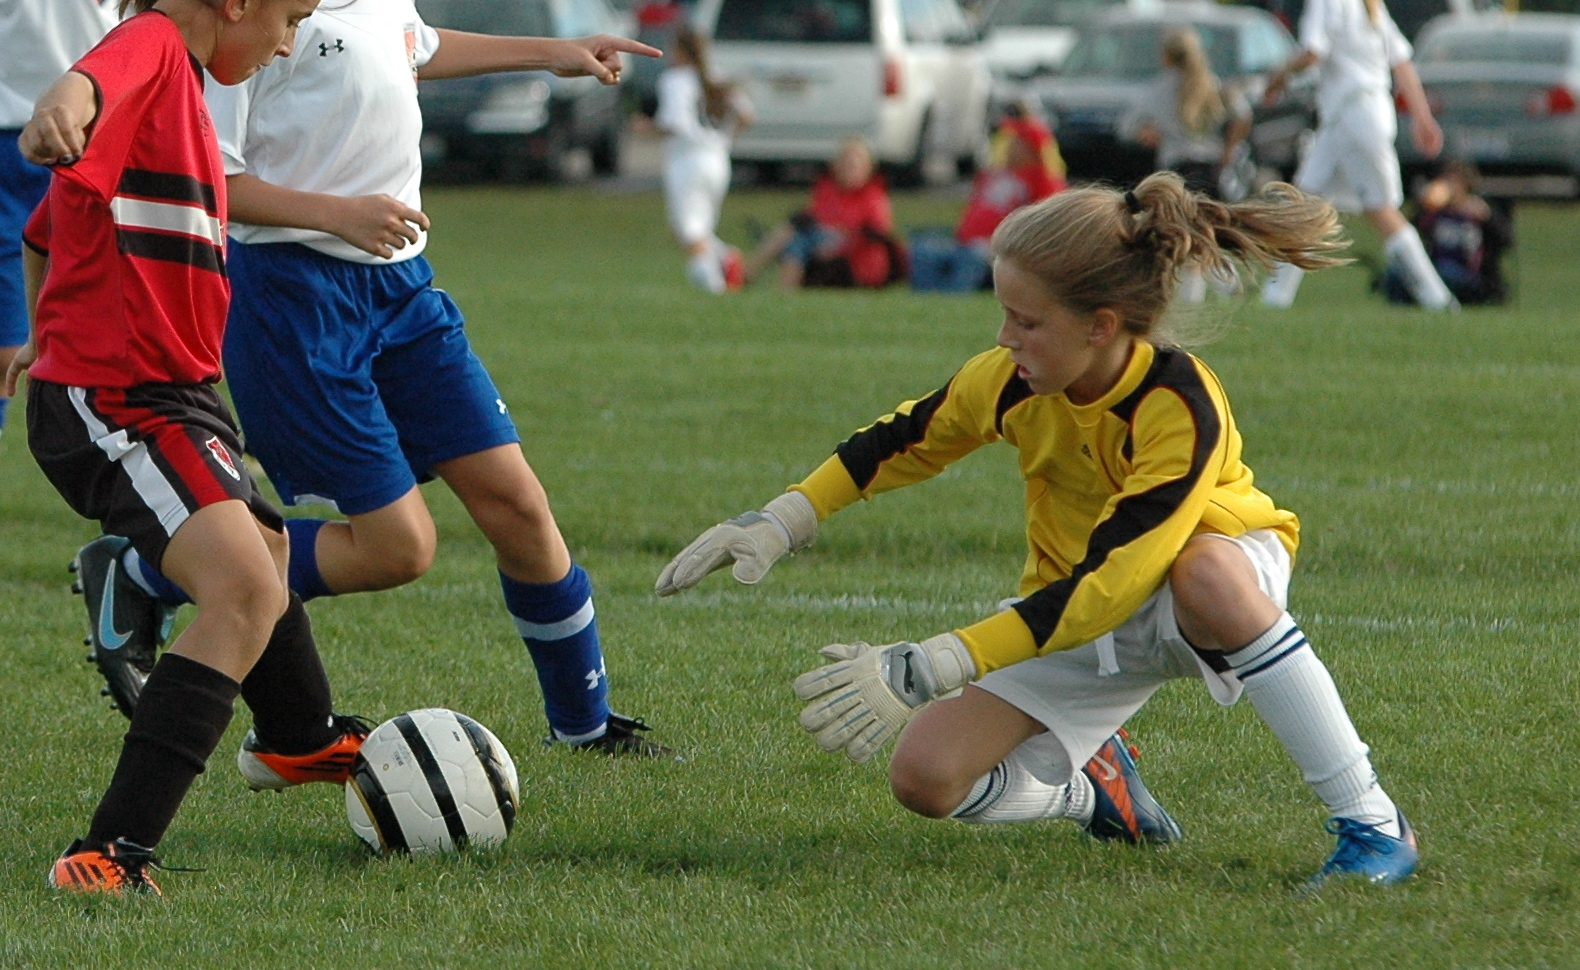 youth soccer sports willing ready action able equipment shots goalie recommend camera start right stats